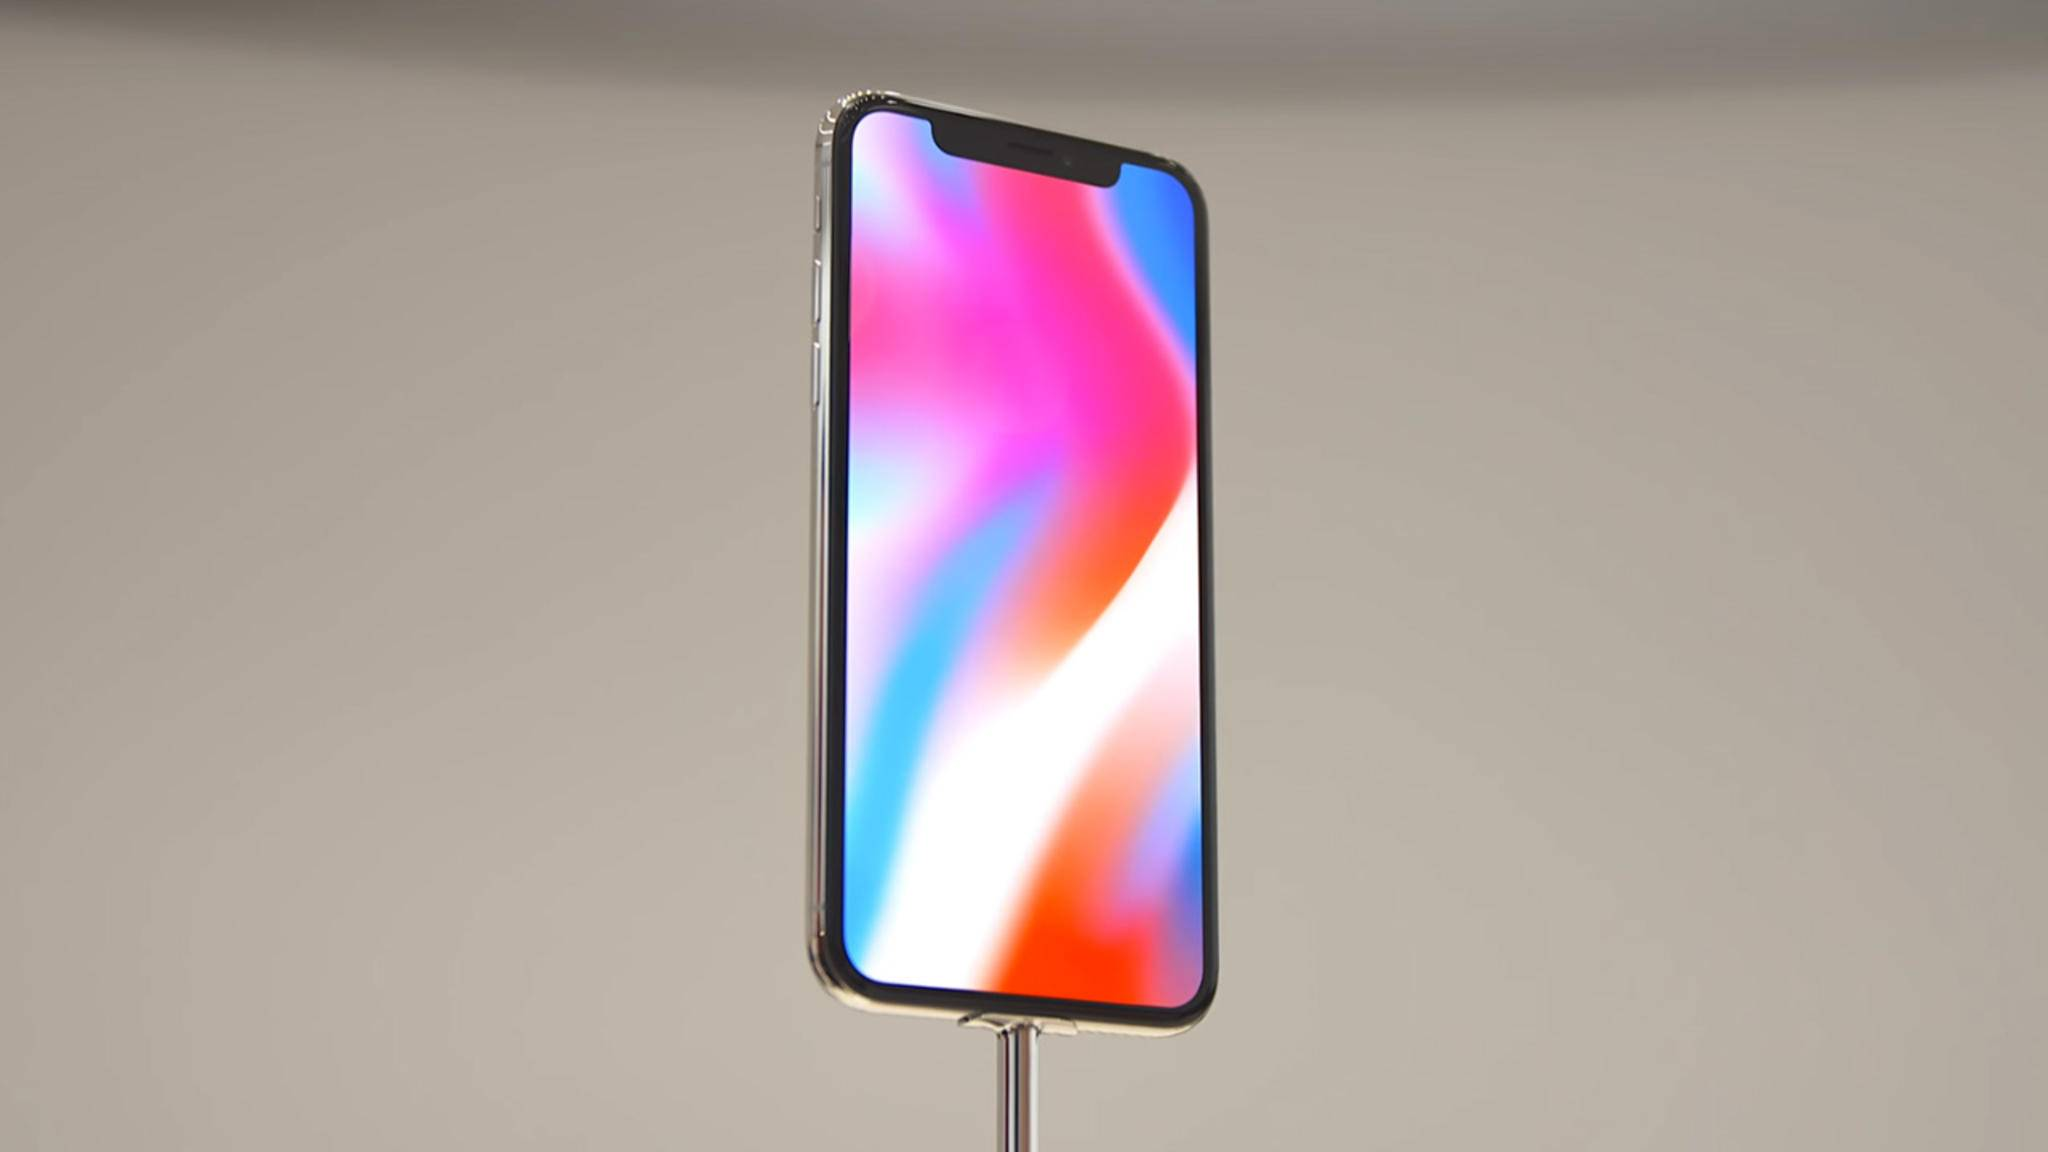 Das iPhone X hat ein nahezu randloses Display.